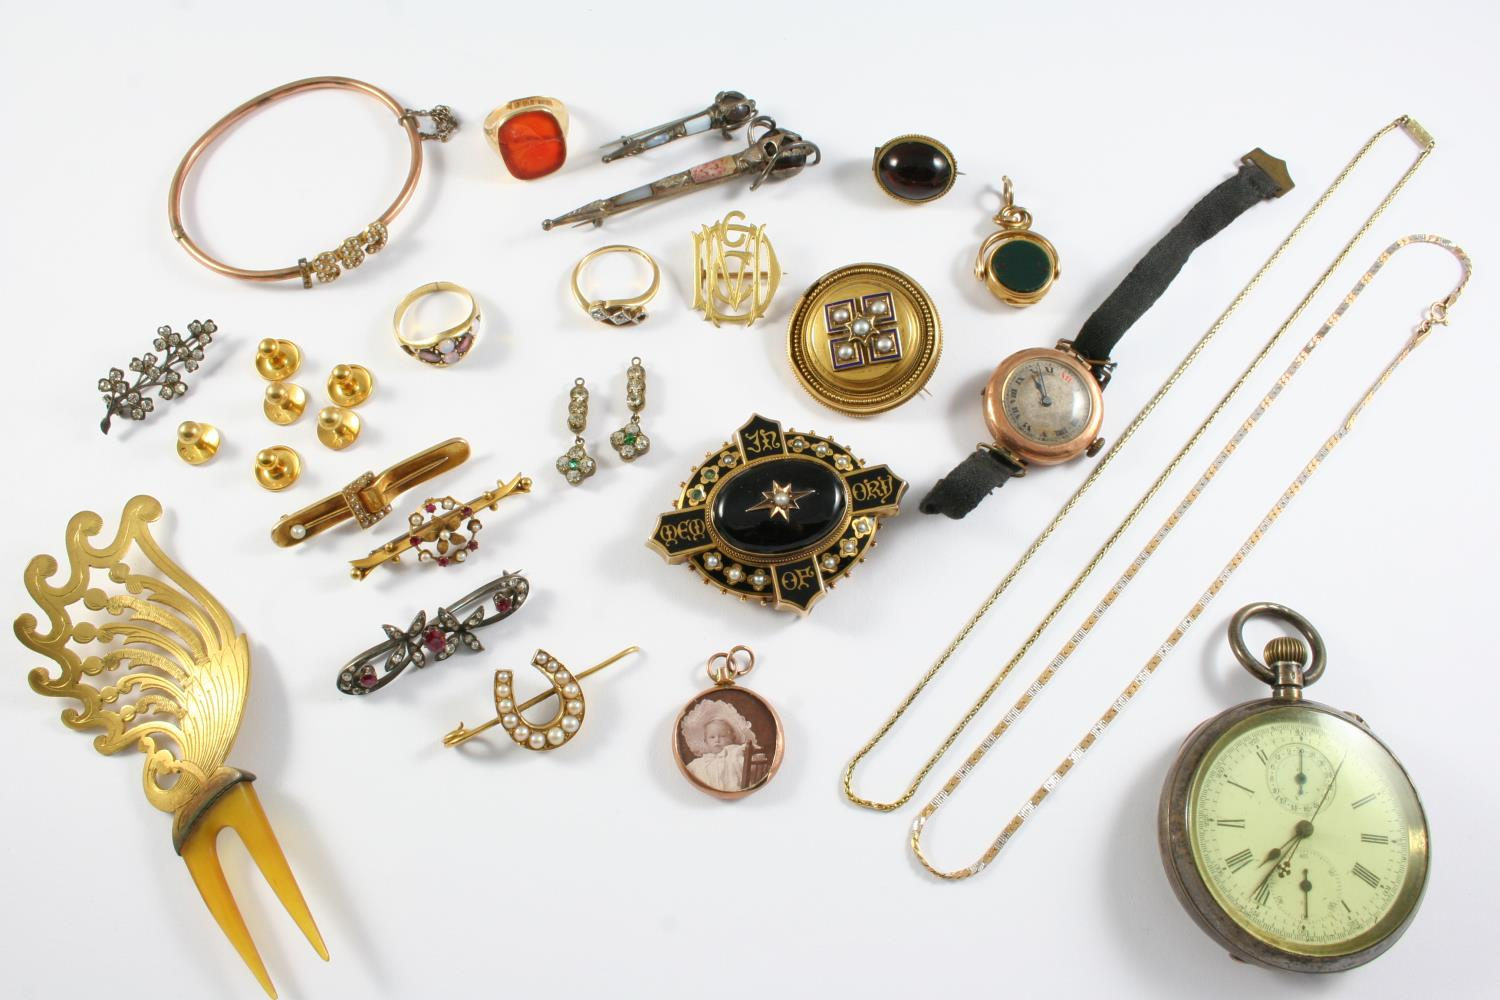 A QUANTITY OF JEWELLERY including a Victorian gold and black enamel mourning brooch, a gold hinged